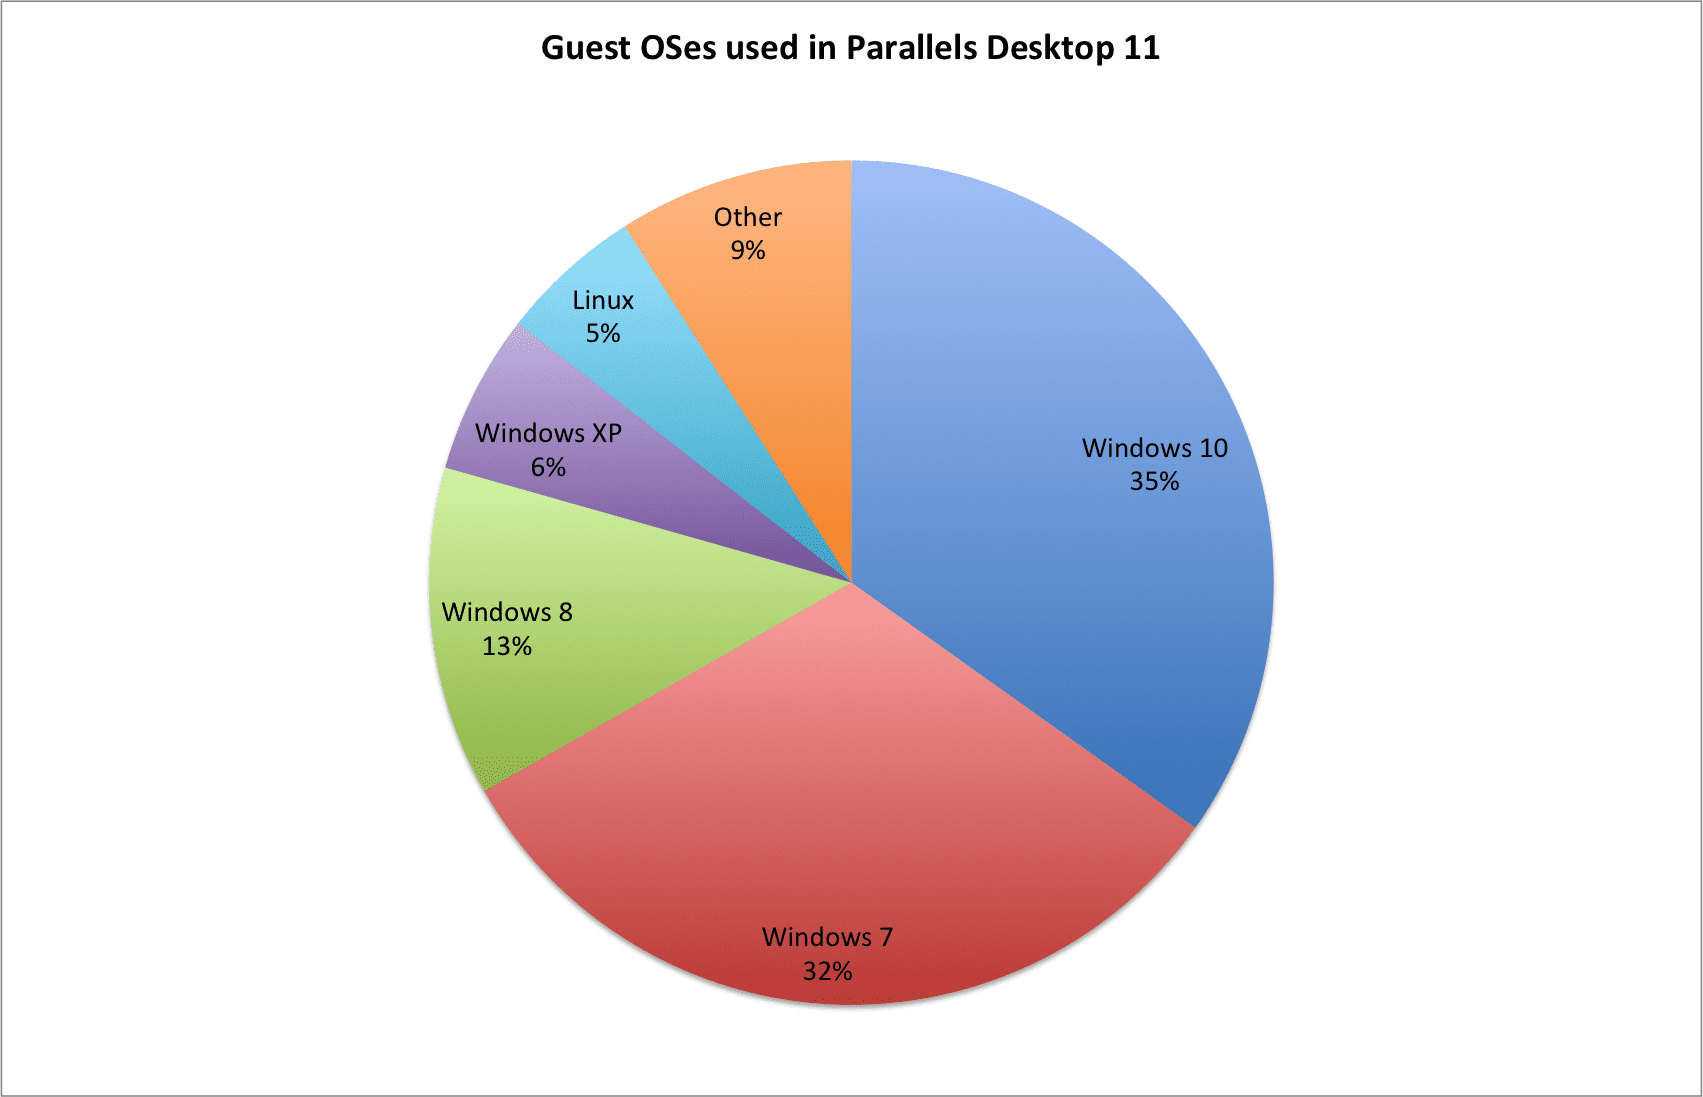 [Image: Figure-2-Guest-OSes-used-in-Parallels-Desktop-11.png]